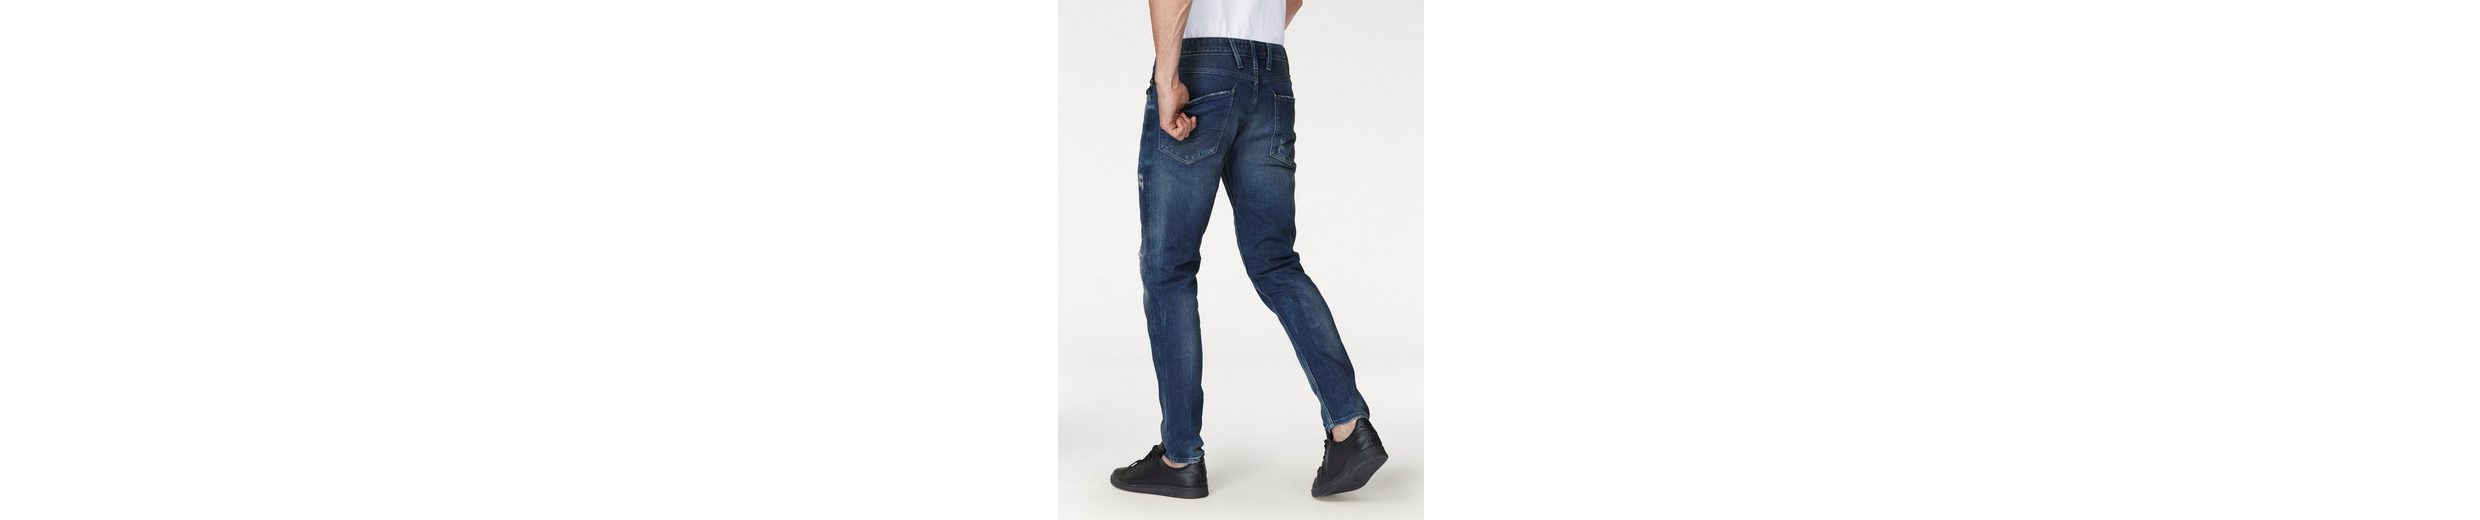 Replay Slim-fit-Jeans Anbass, Destroyed Effekte